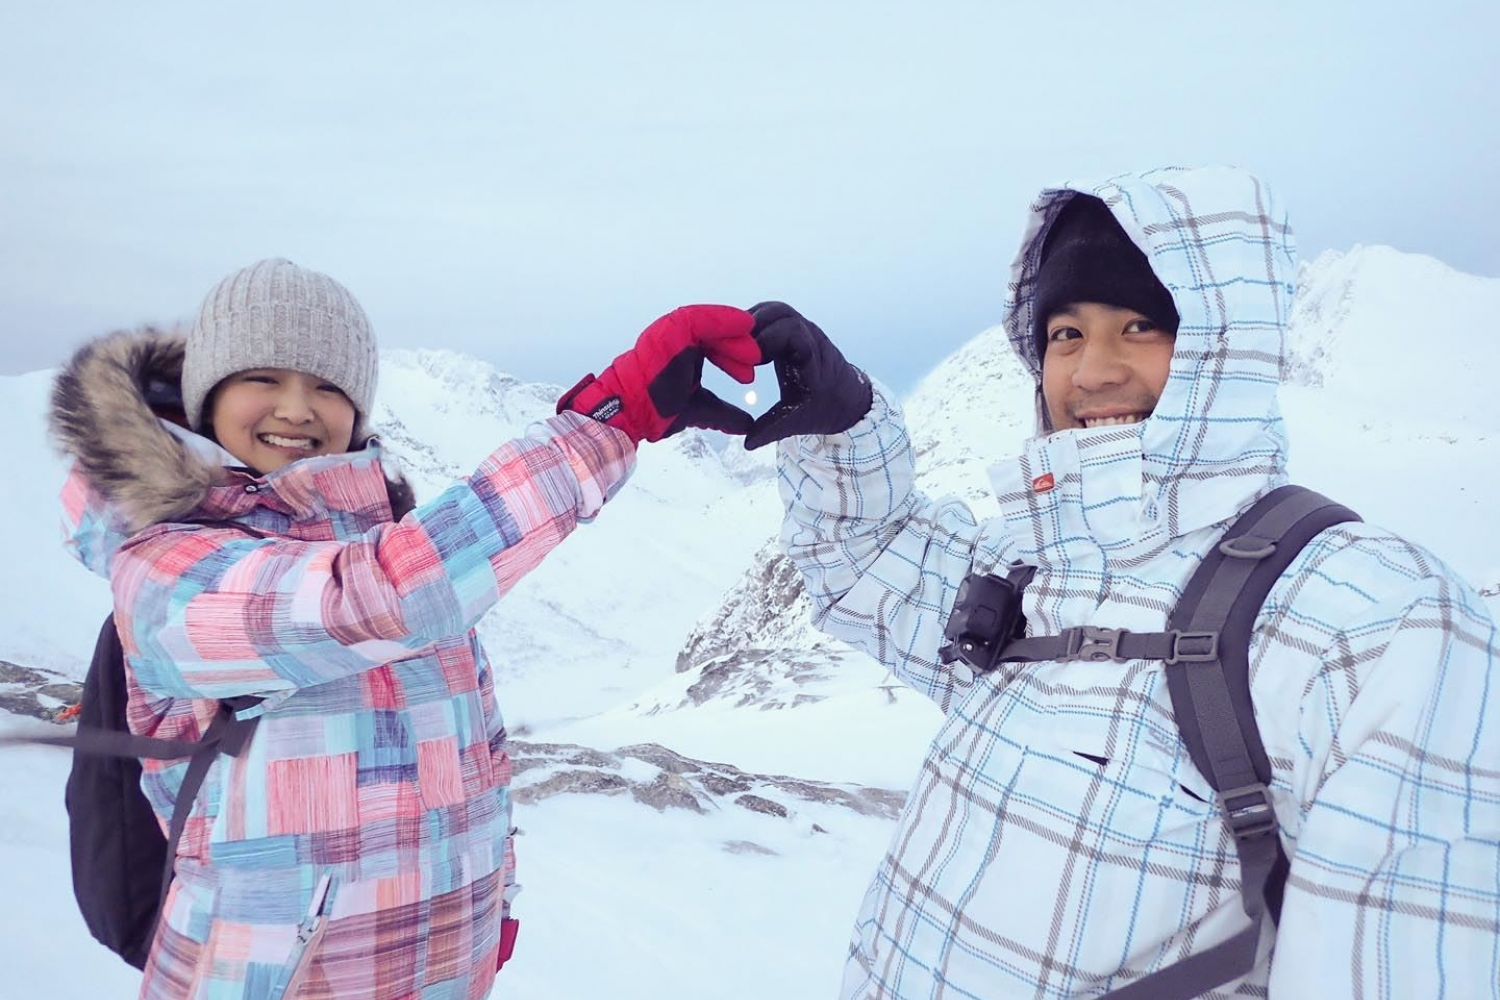 Couple making a heart with their hands, snowy landscape in the background